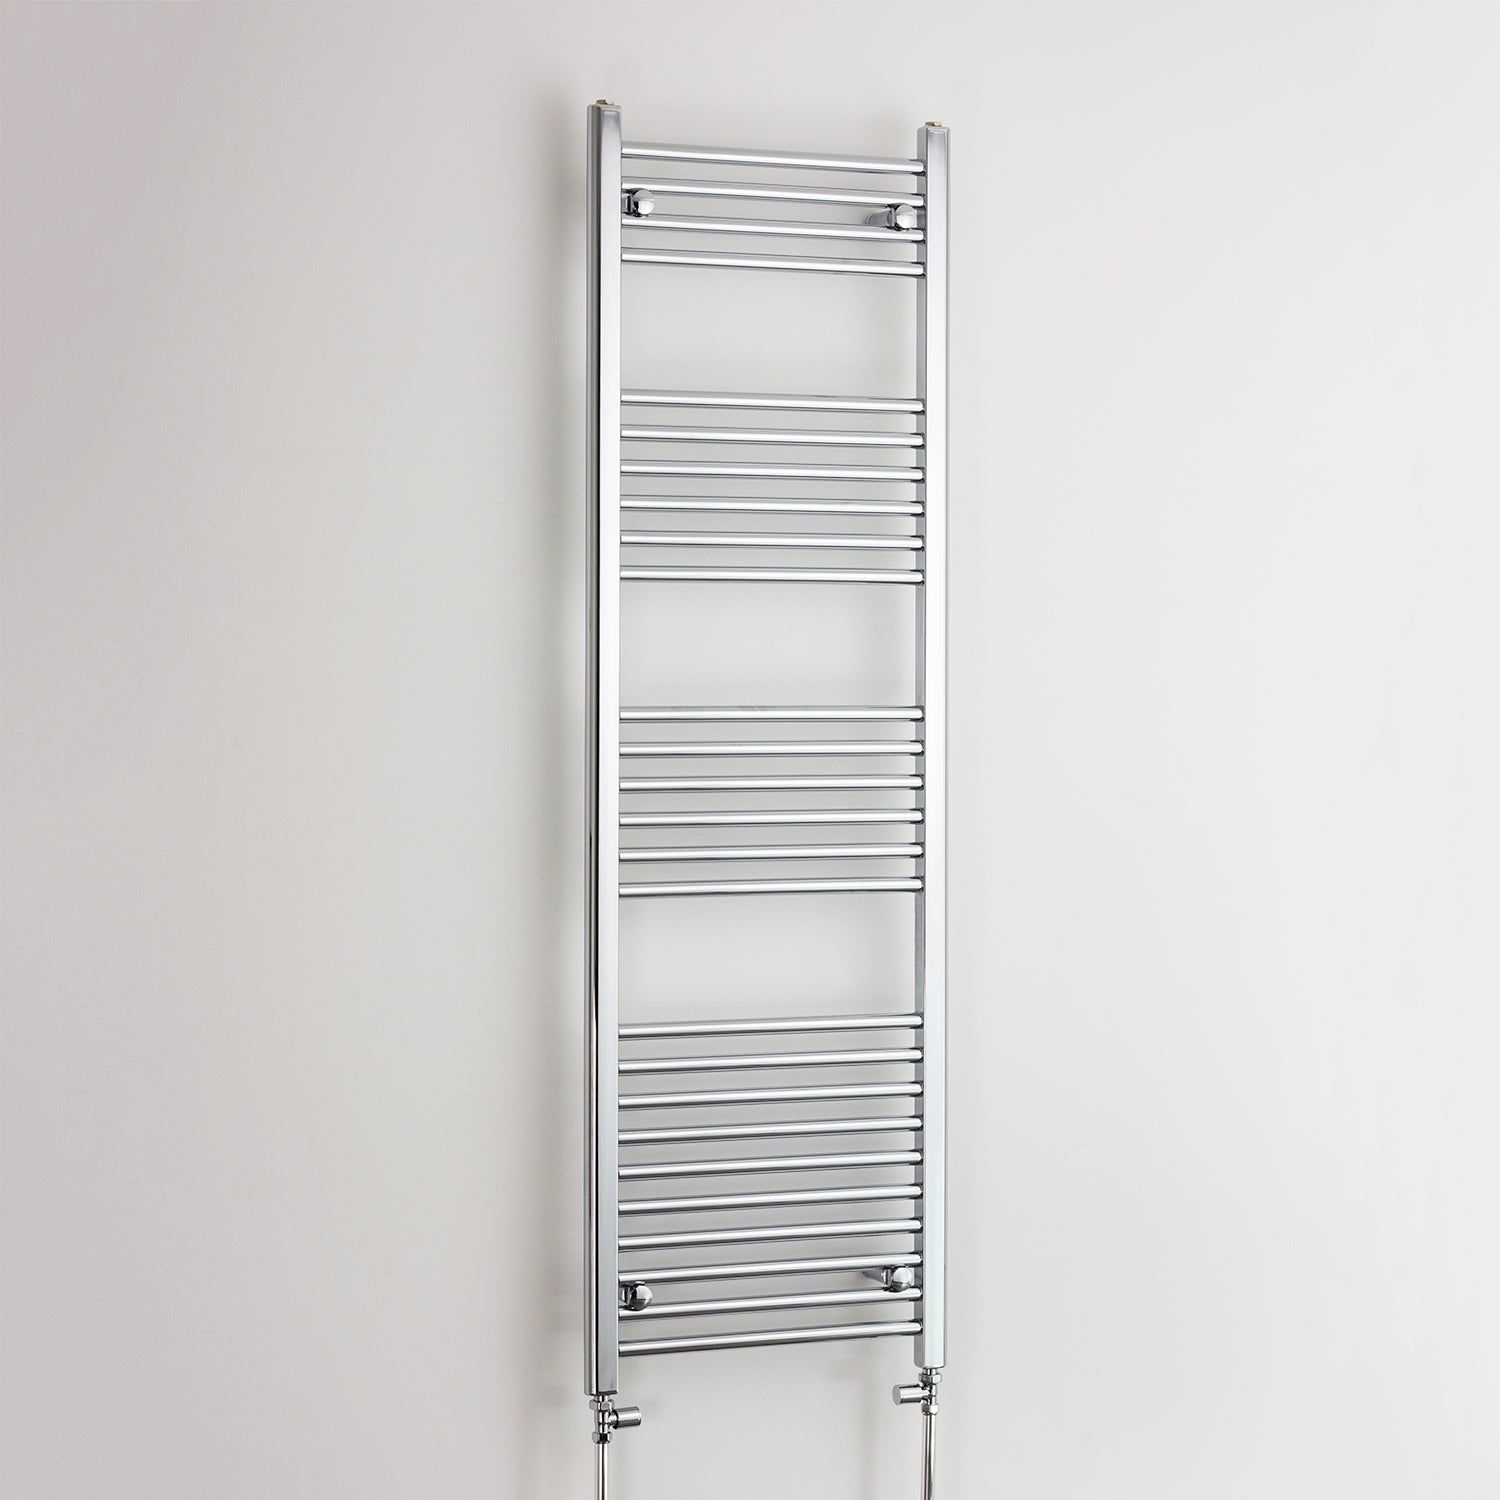 400 mm Wide 1600 mm High Heated Straight Towel Rail Radiator Chrome,With Straight Valve